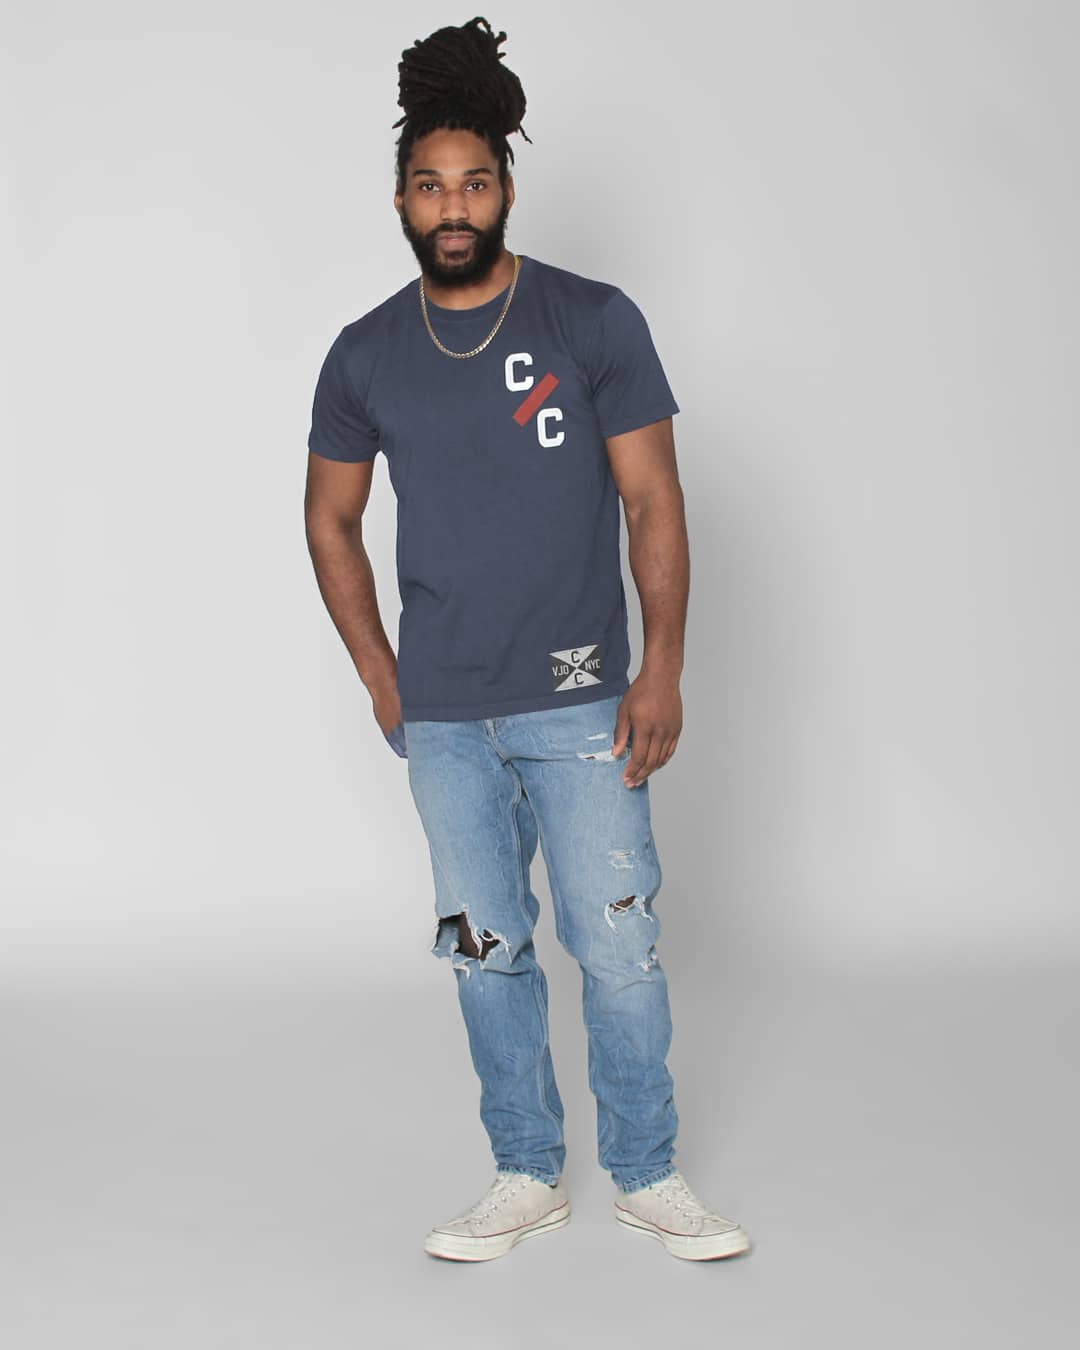 CC Sabathia NY #52 Tee - Roots of Inc dba Roots of Fight